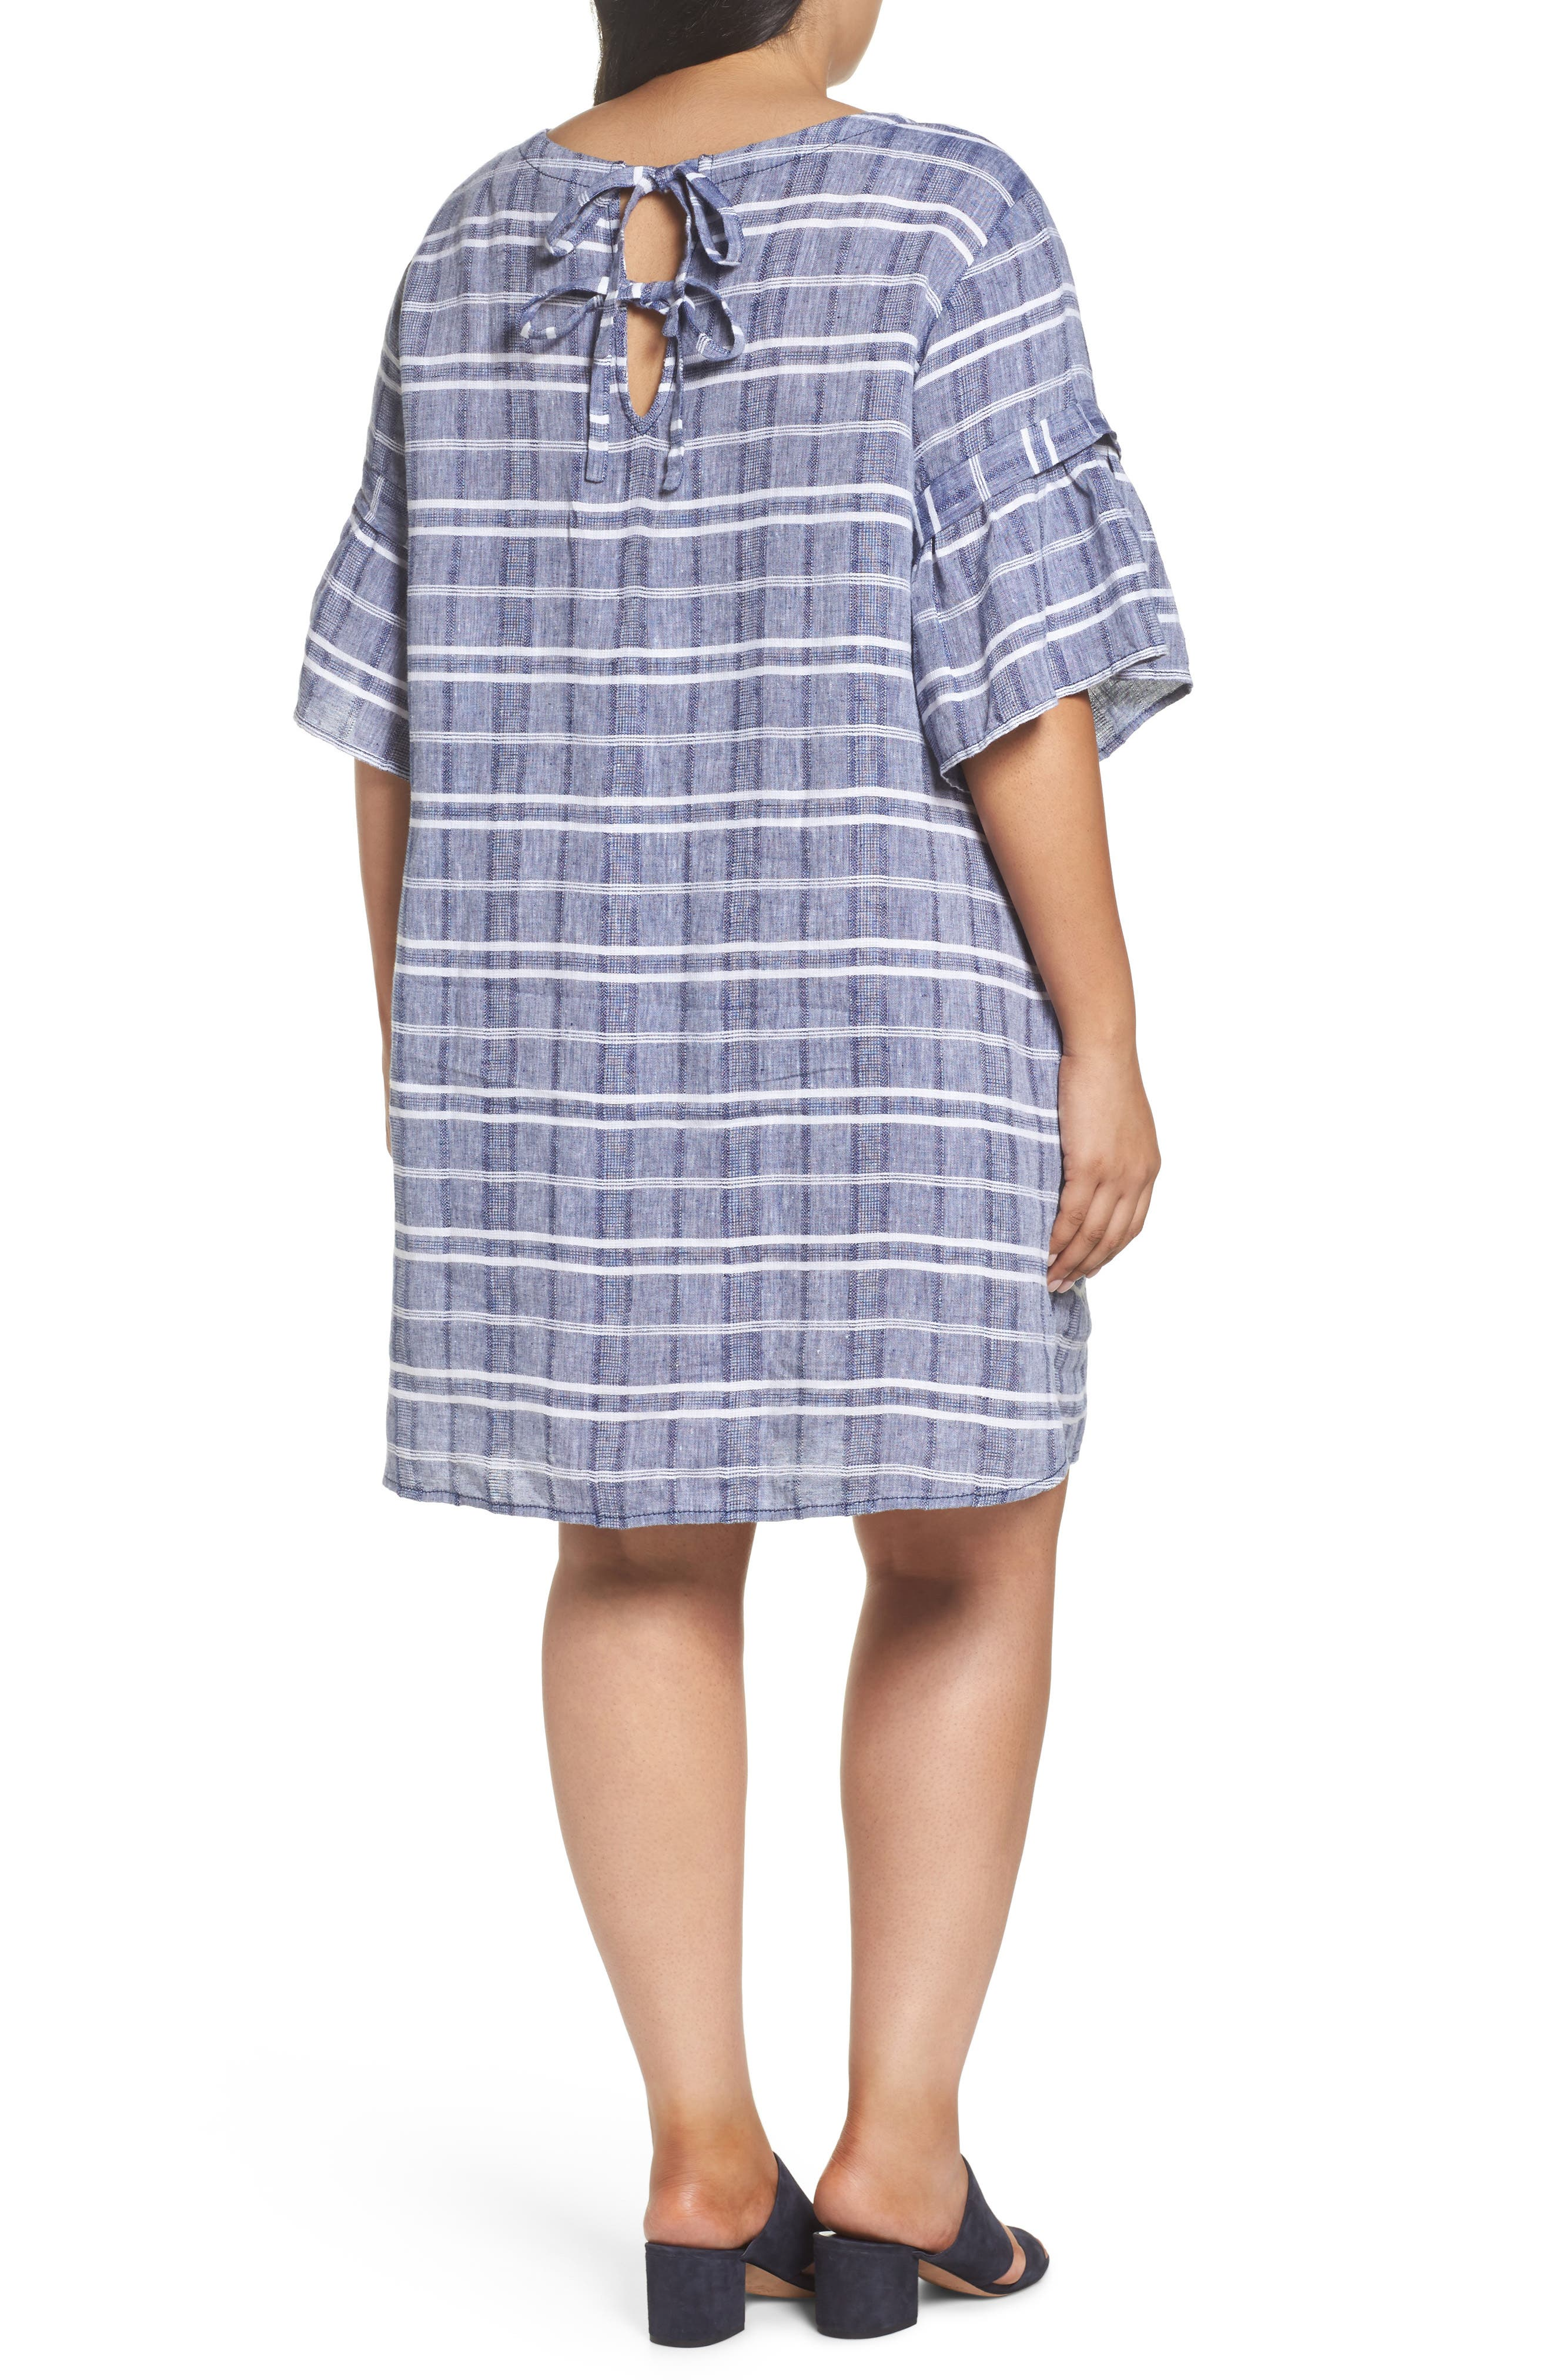 Tie Back Linen Dress,                             Alternate thumbnail 2, color,                             Navy- White Plaid